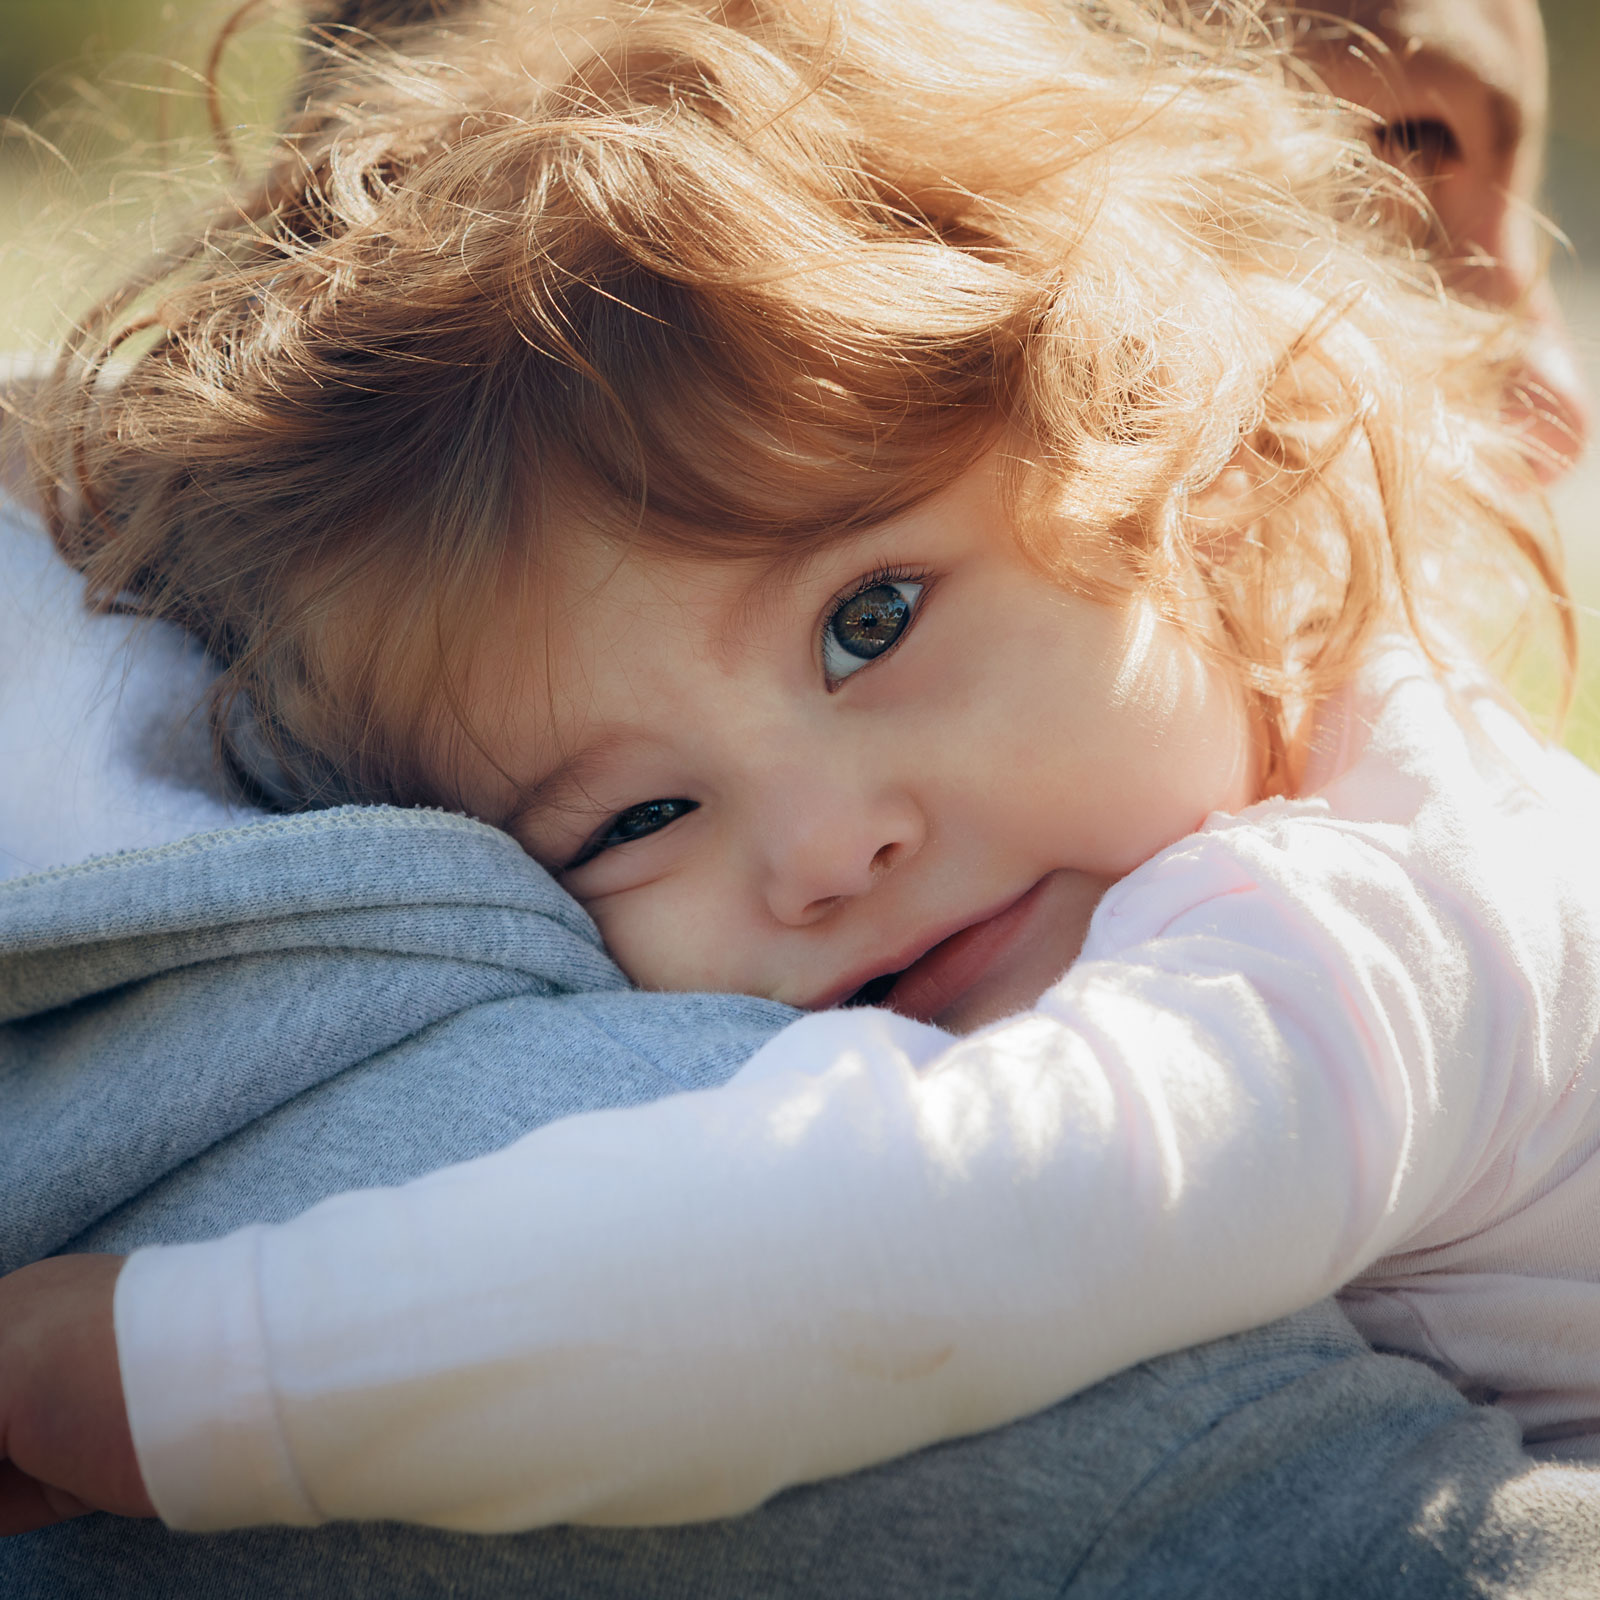 A young girl rests on her dad's shoulder